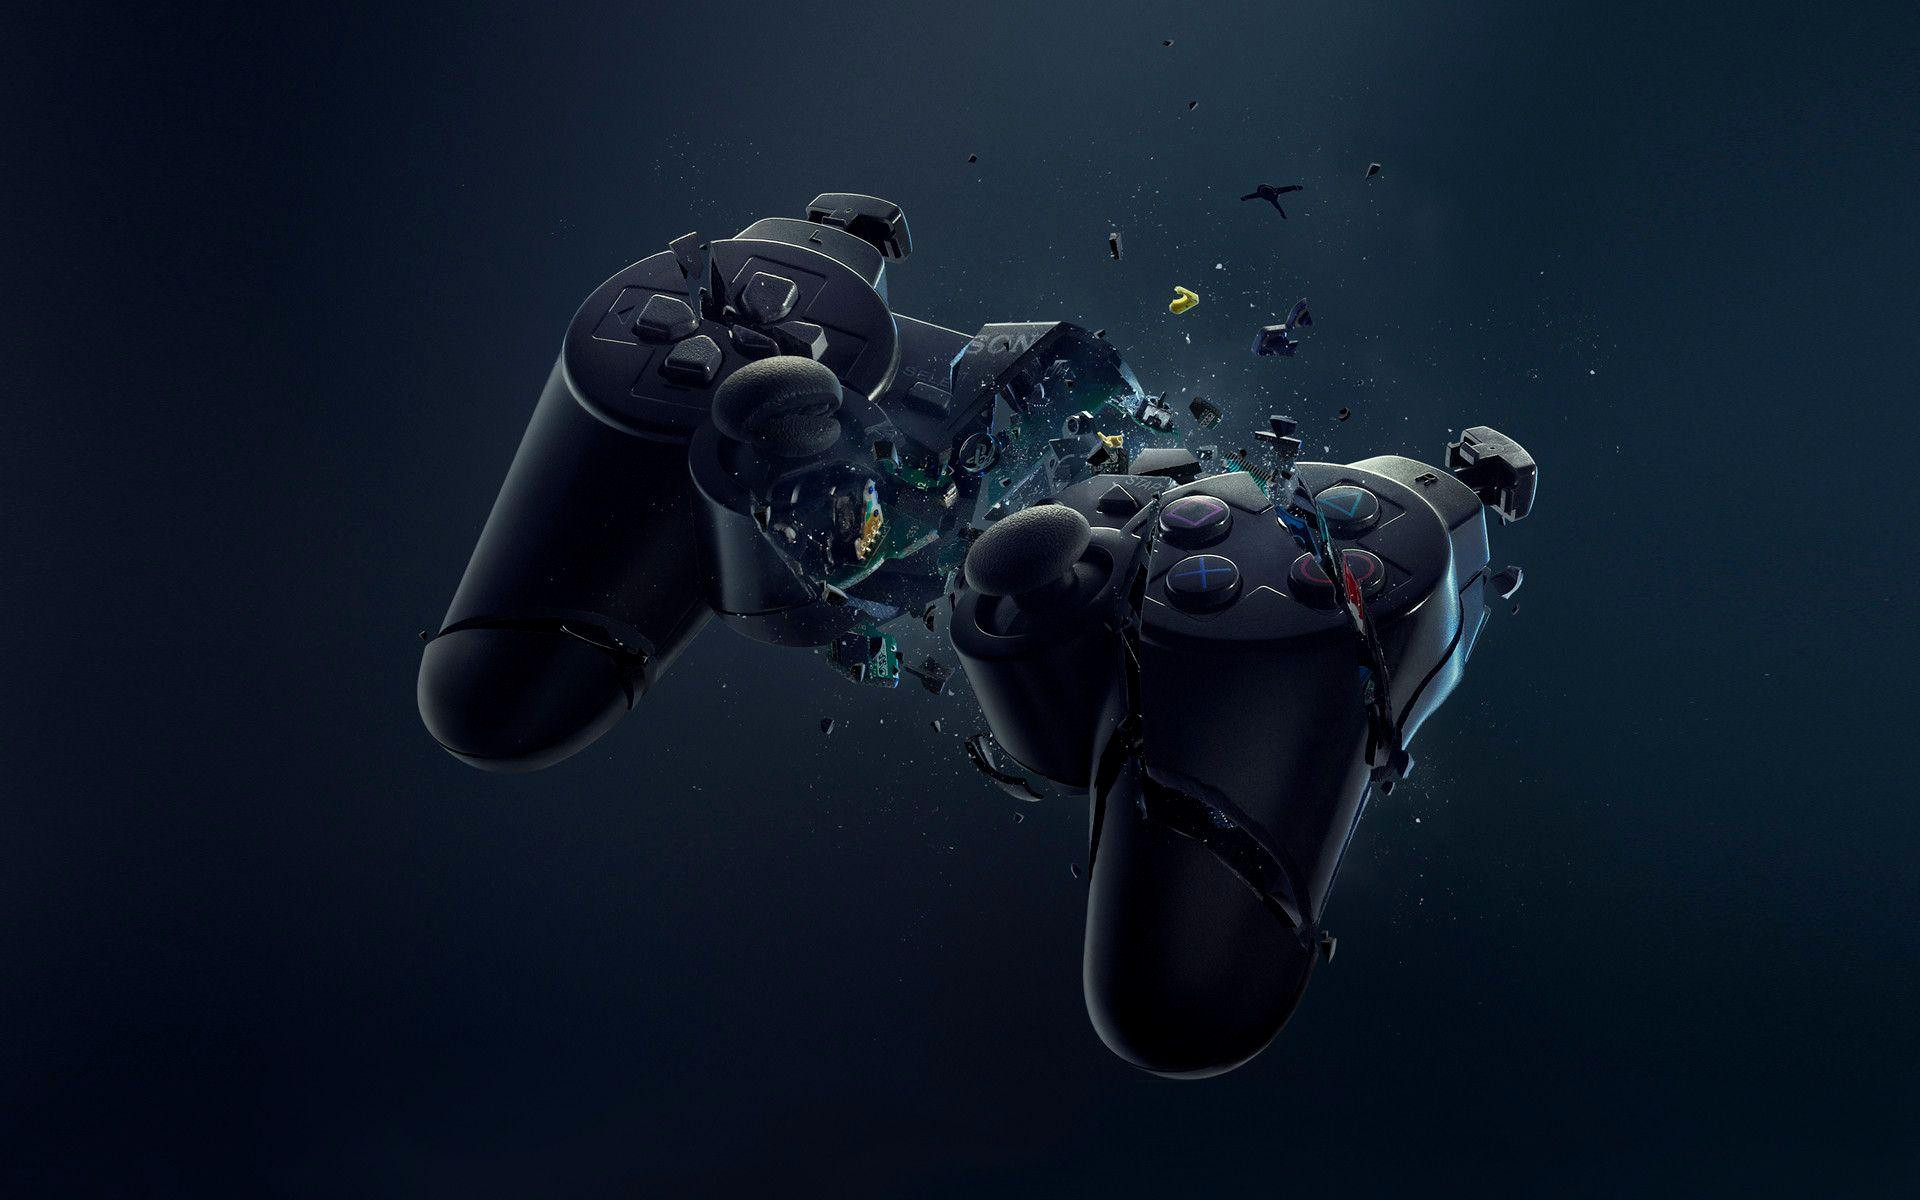 ps3 themes and wallpapers 88 background pictures